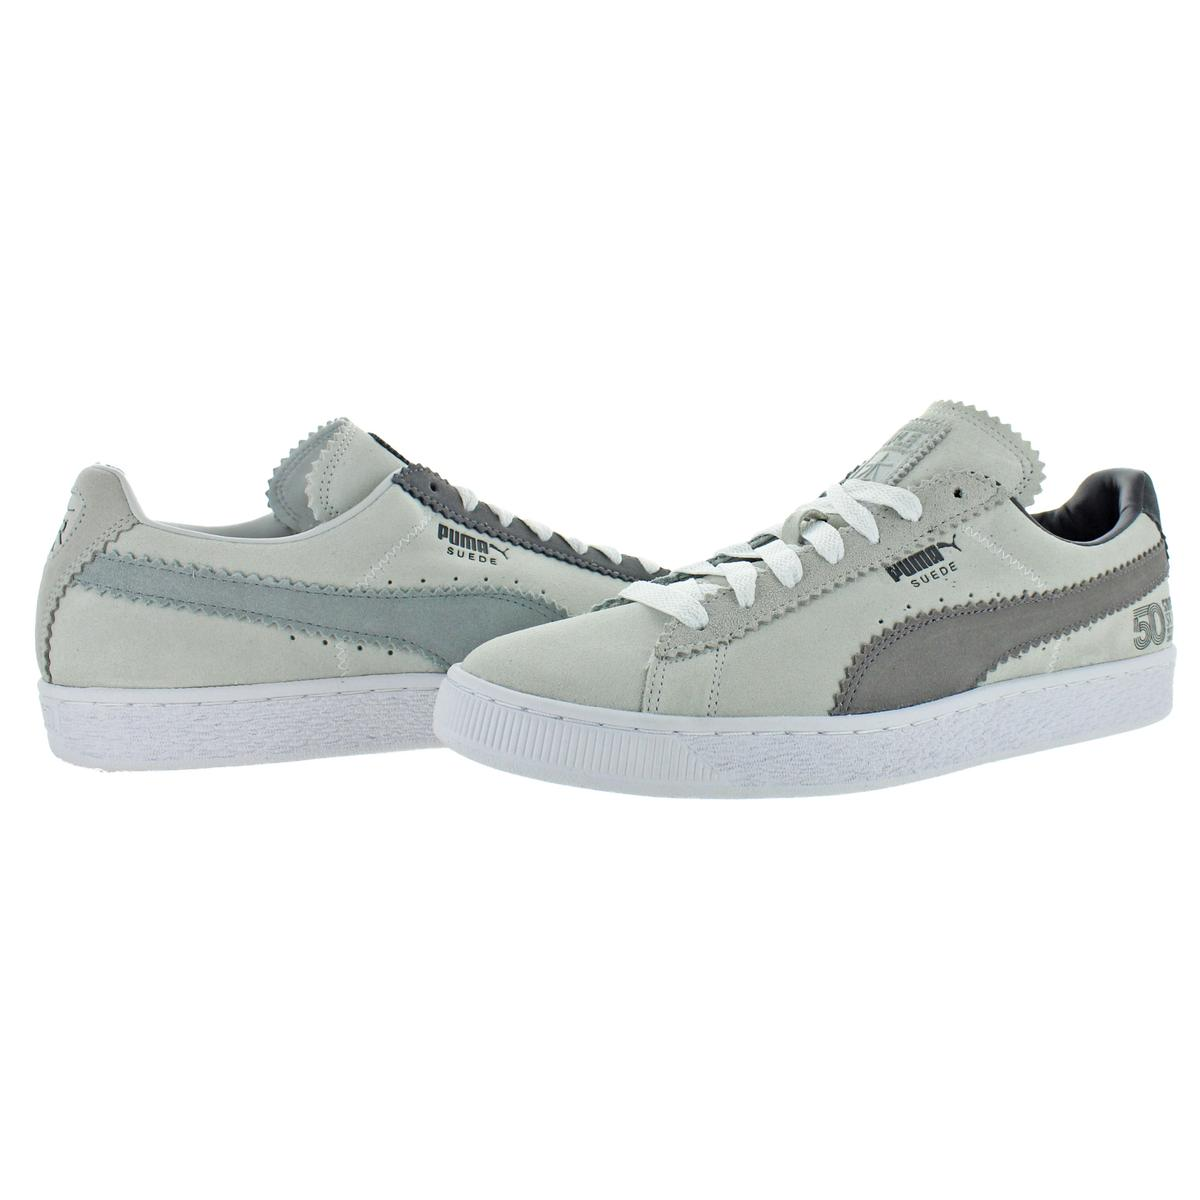 Puma-Suede-Classic-Men-039-s-Fashion-Sneakers-Shoes thumbnail 40